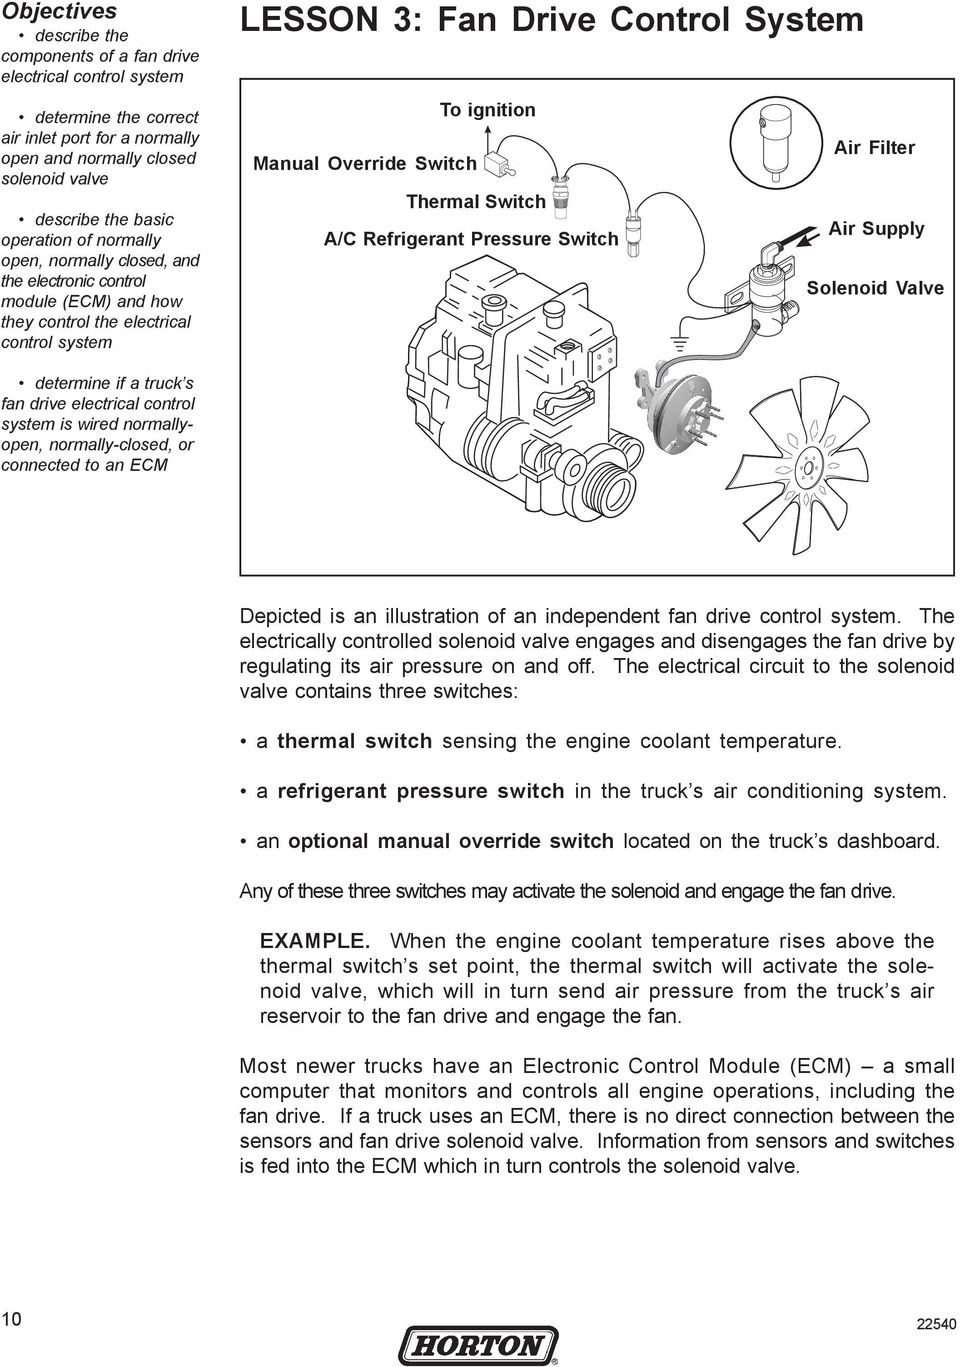 Heavy Duty Fan Drive Maintenance Training Manual Pdf Kenworth Engine Solenoid Wiring Diagram Electrical Control System Is Wired Normallyopen Normally Closed Or Connected To An Ecm